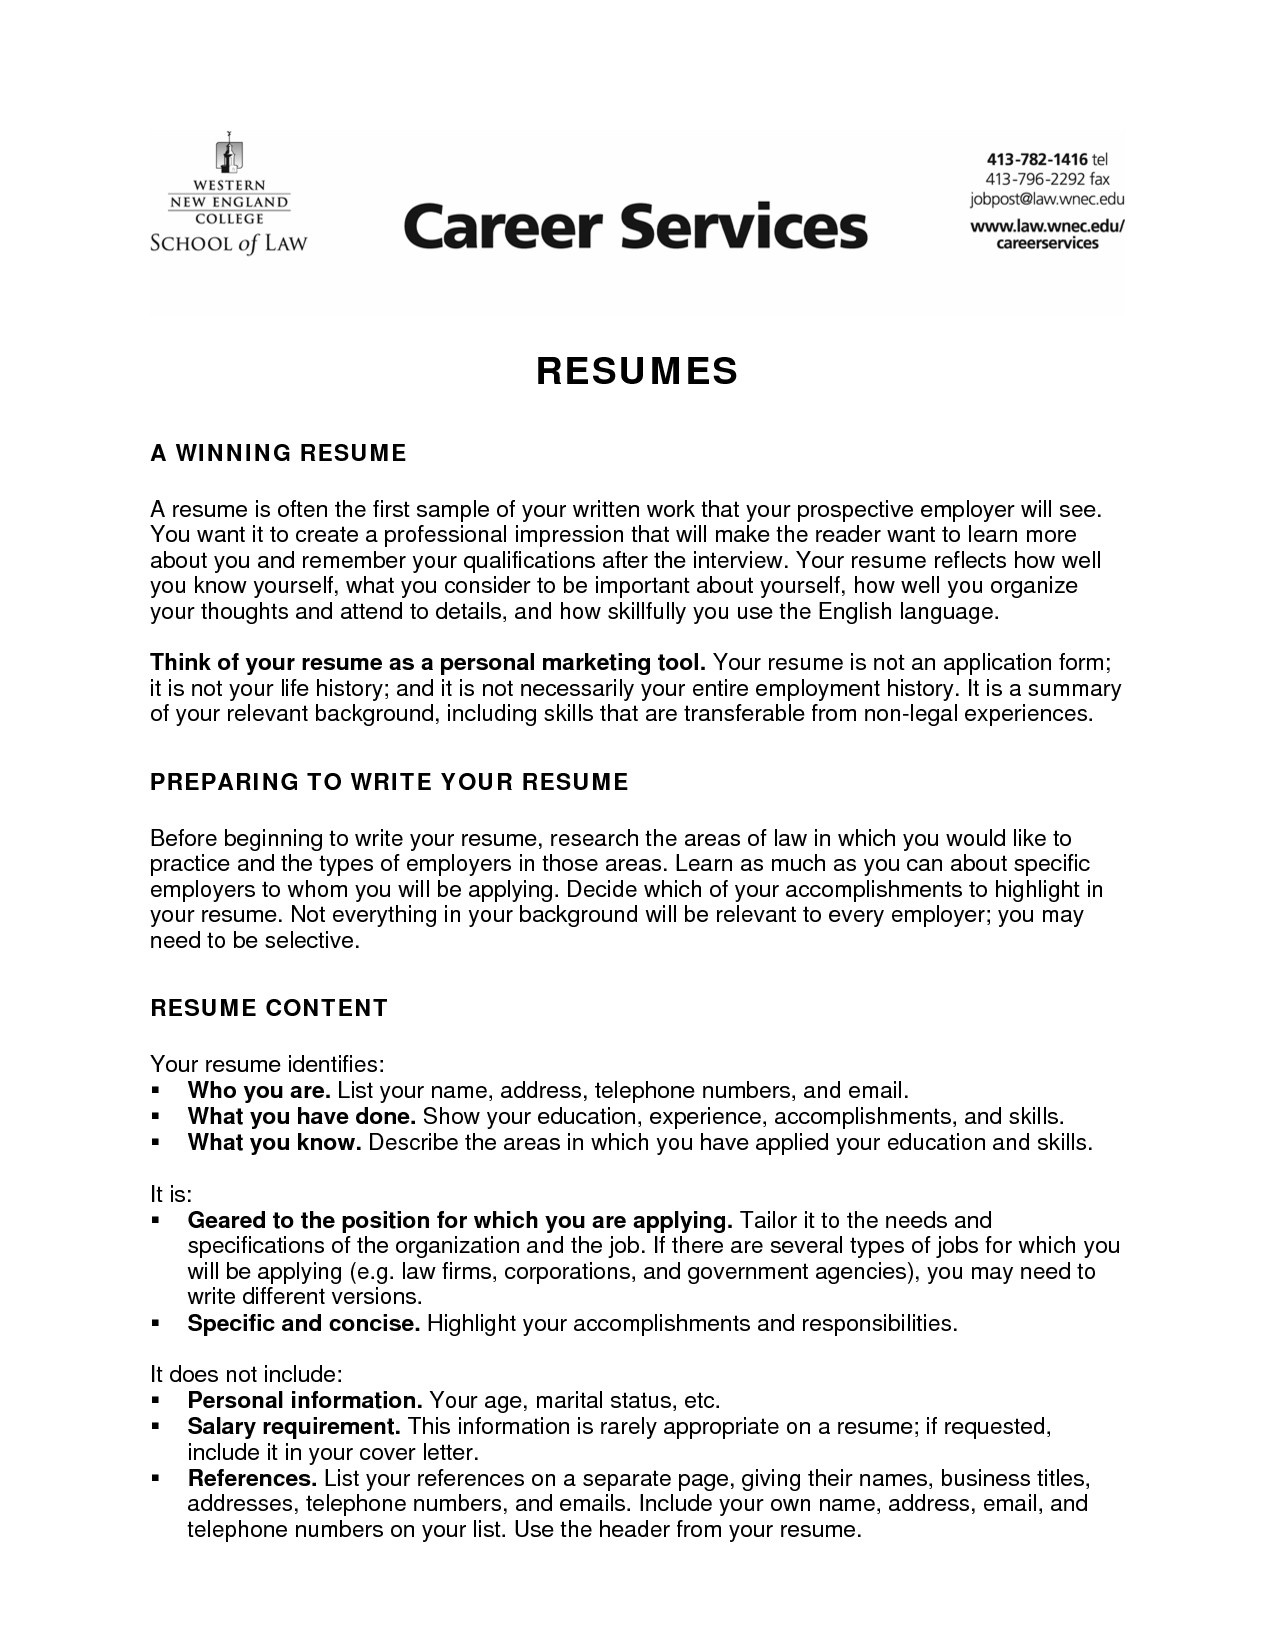 Best Nursing Resume - Nursing Resume Objective Examples Best Elegant Good Nursing